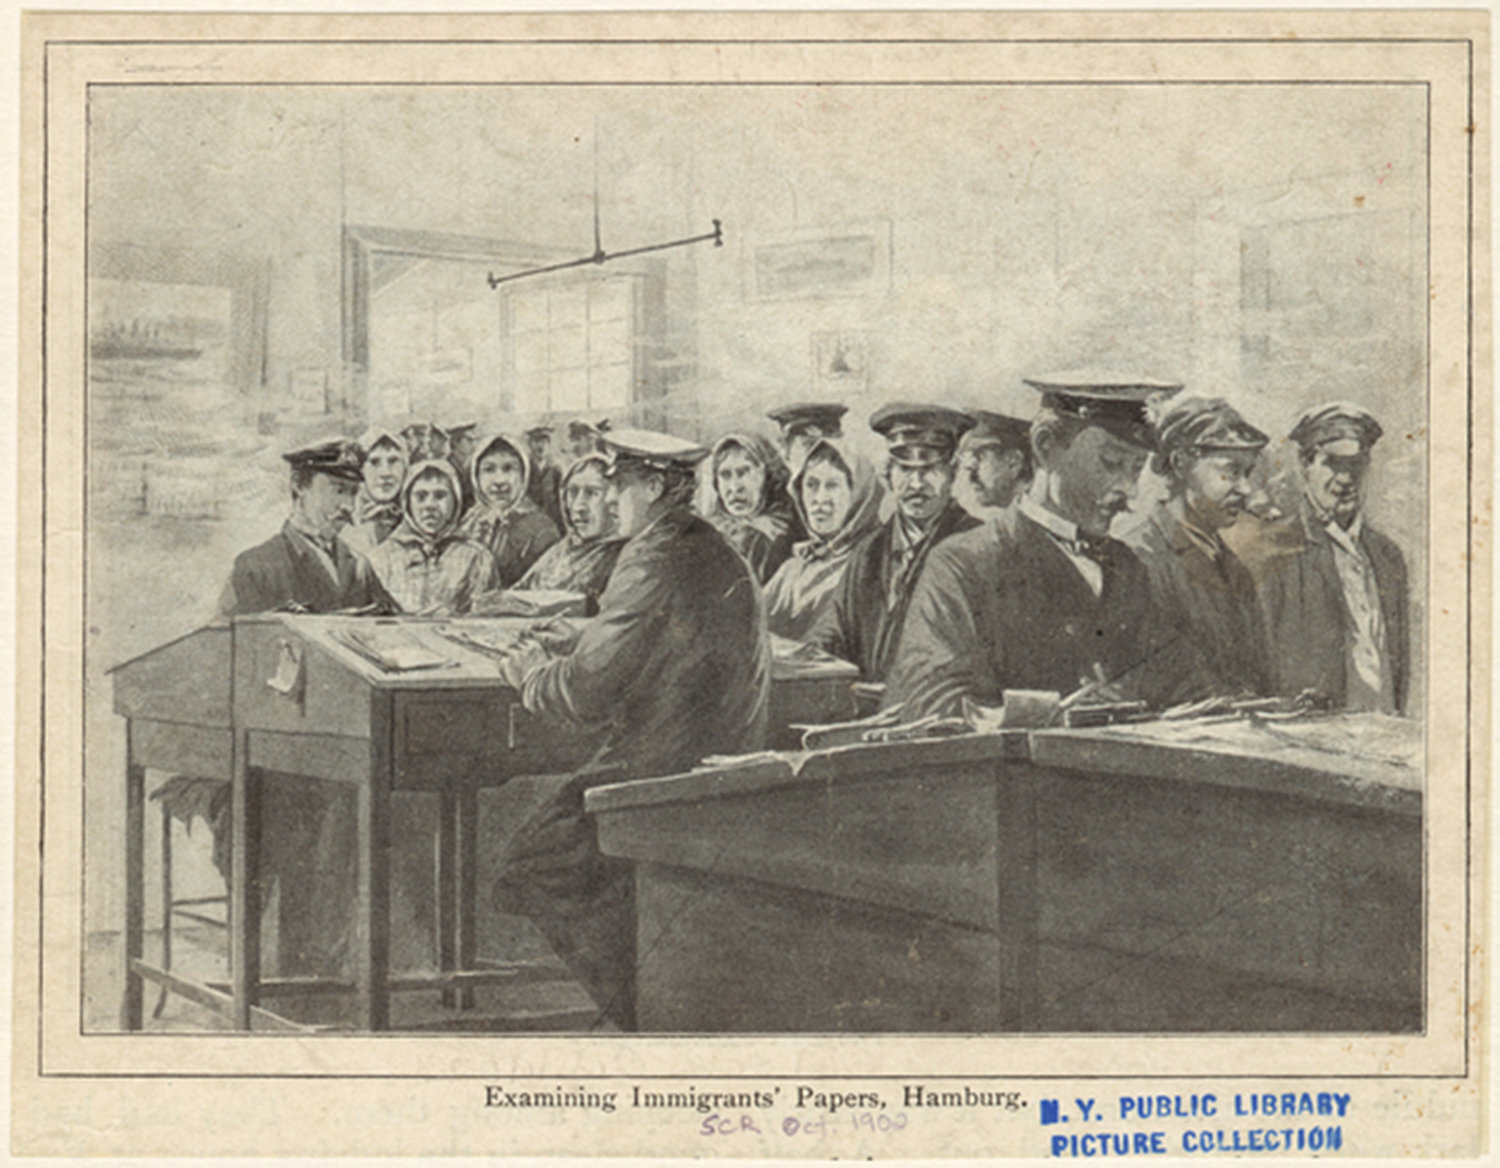 Examining immigrants' papers, Hamburg, Scribner's magazine.1900, New York, NYPL Digital Gallery, Public Domain Mark